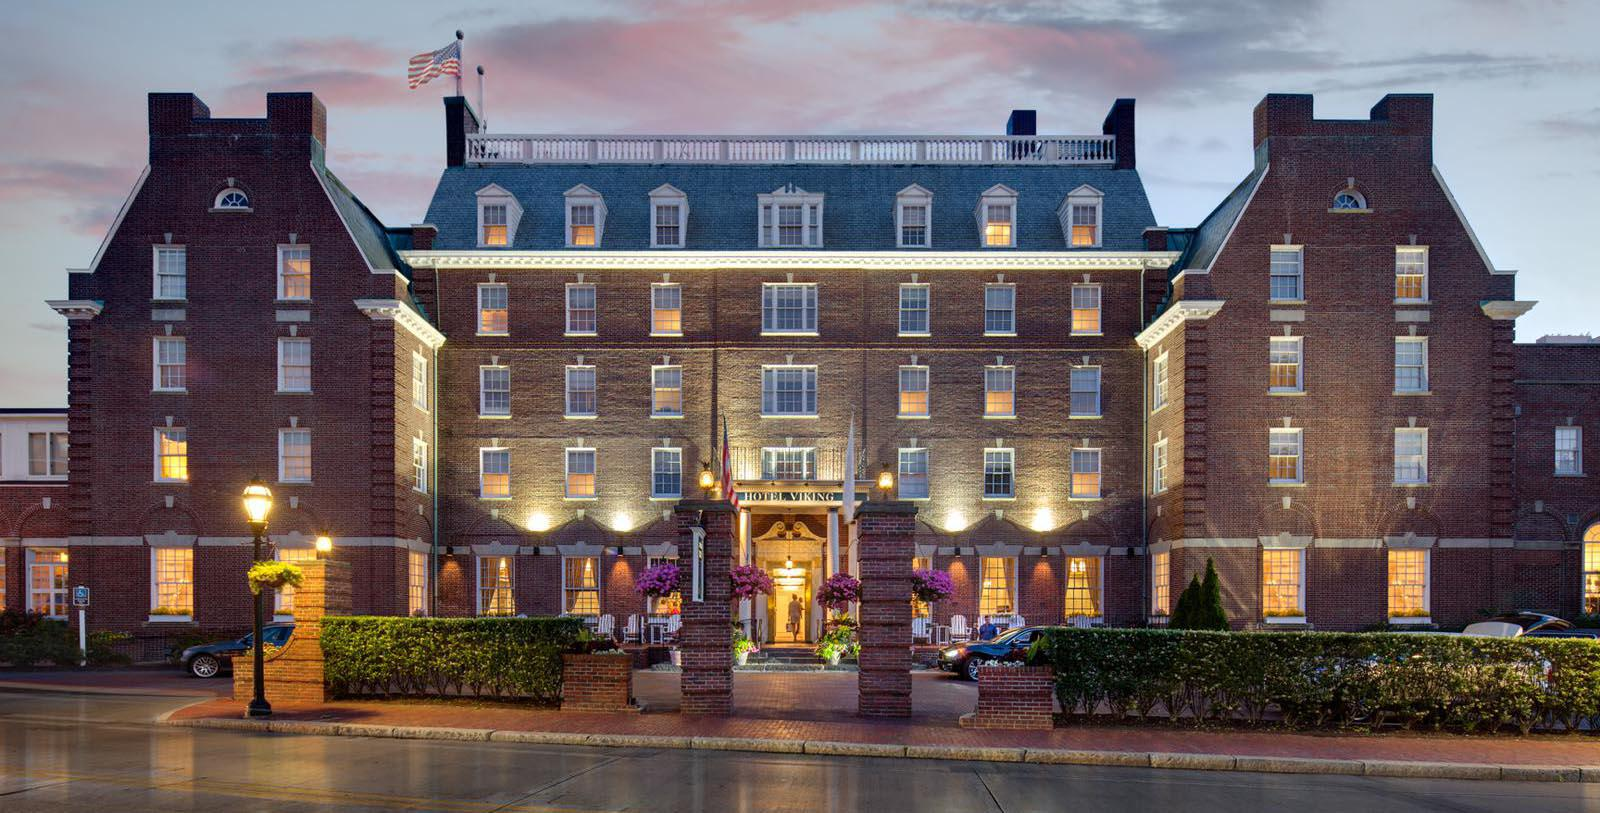 Image of Entrance The Hotel Viking, 1926, Member of Historic Hotels of America, in Newport, Rhode Island, Overview